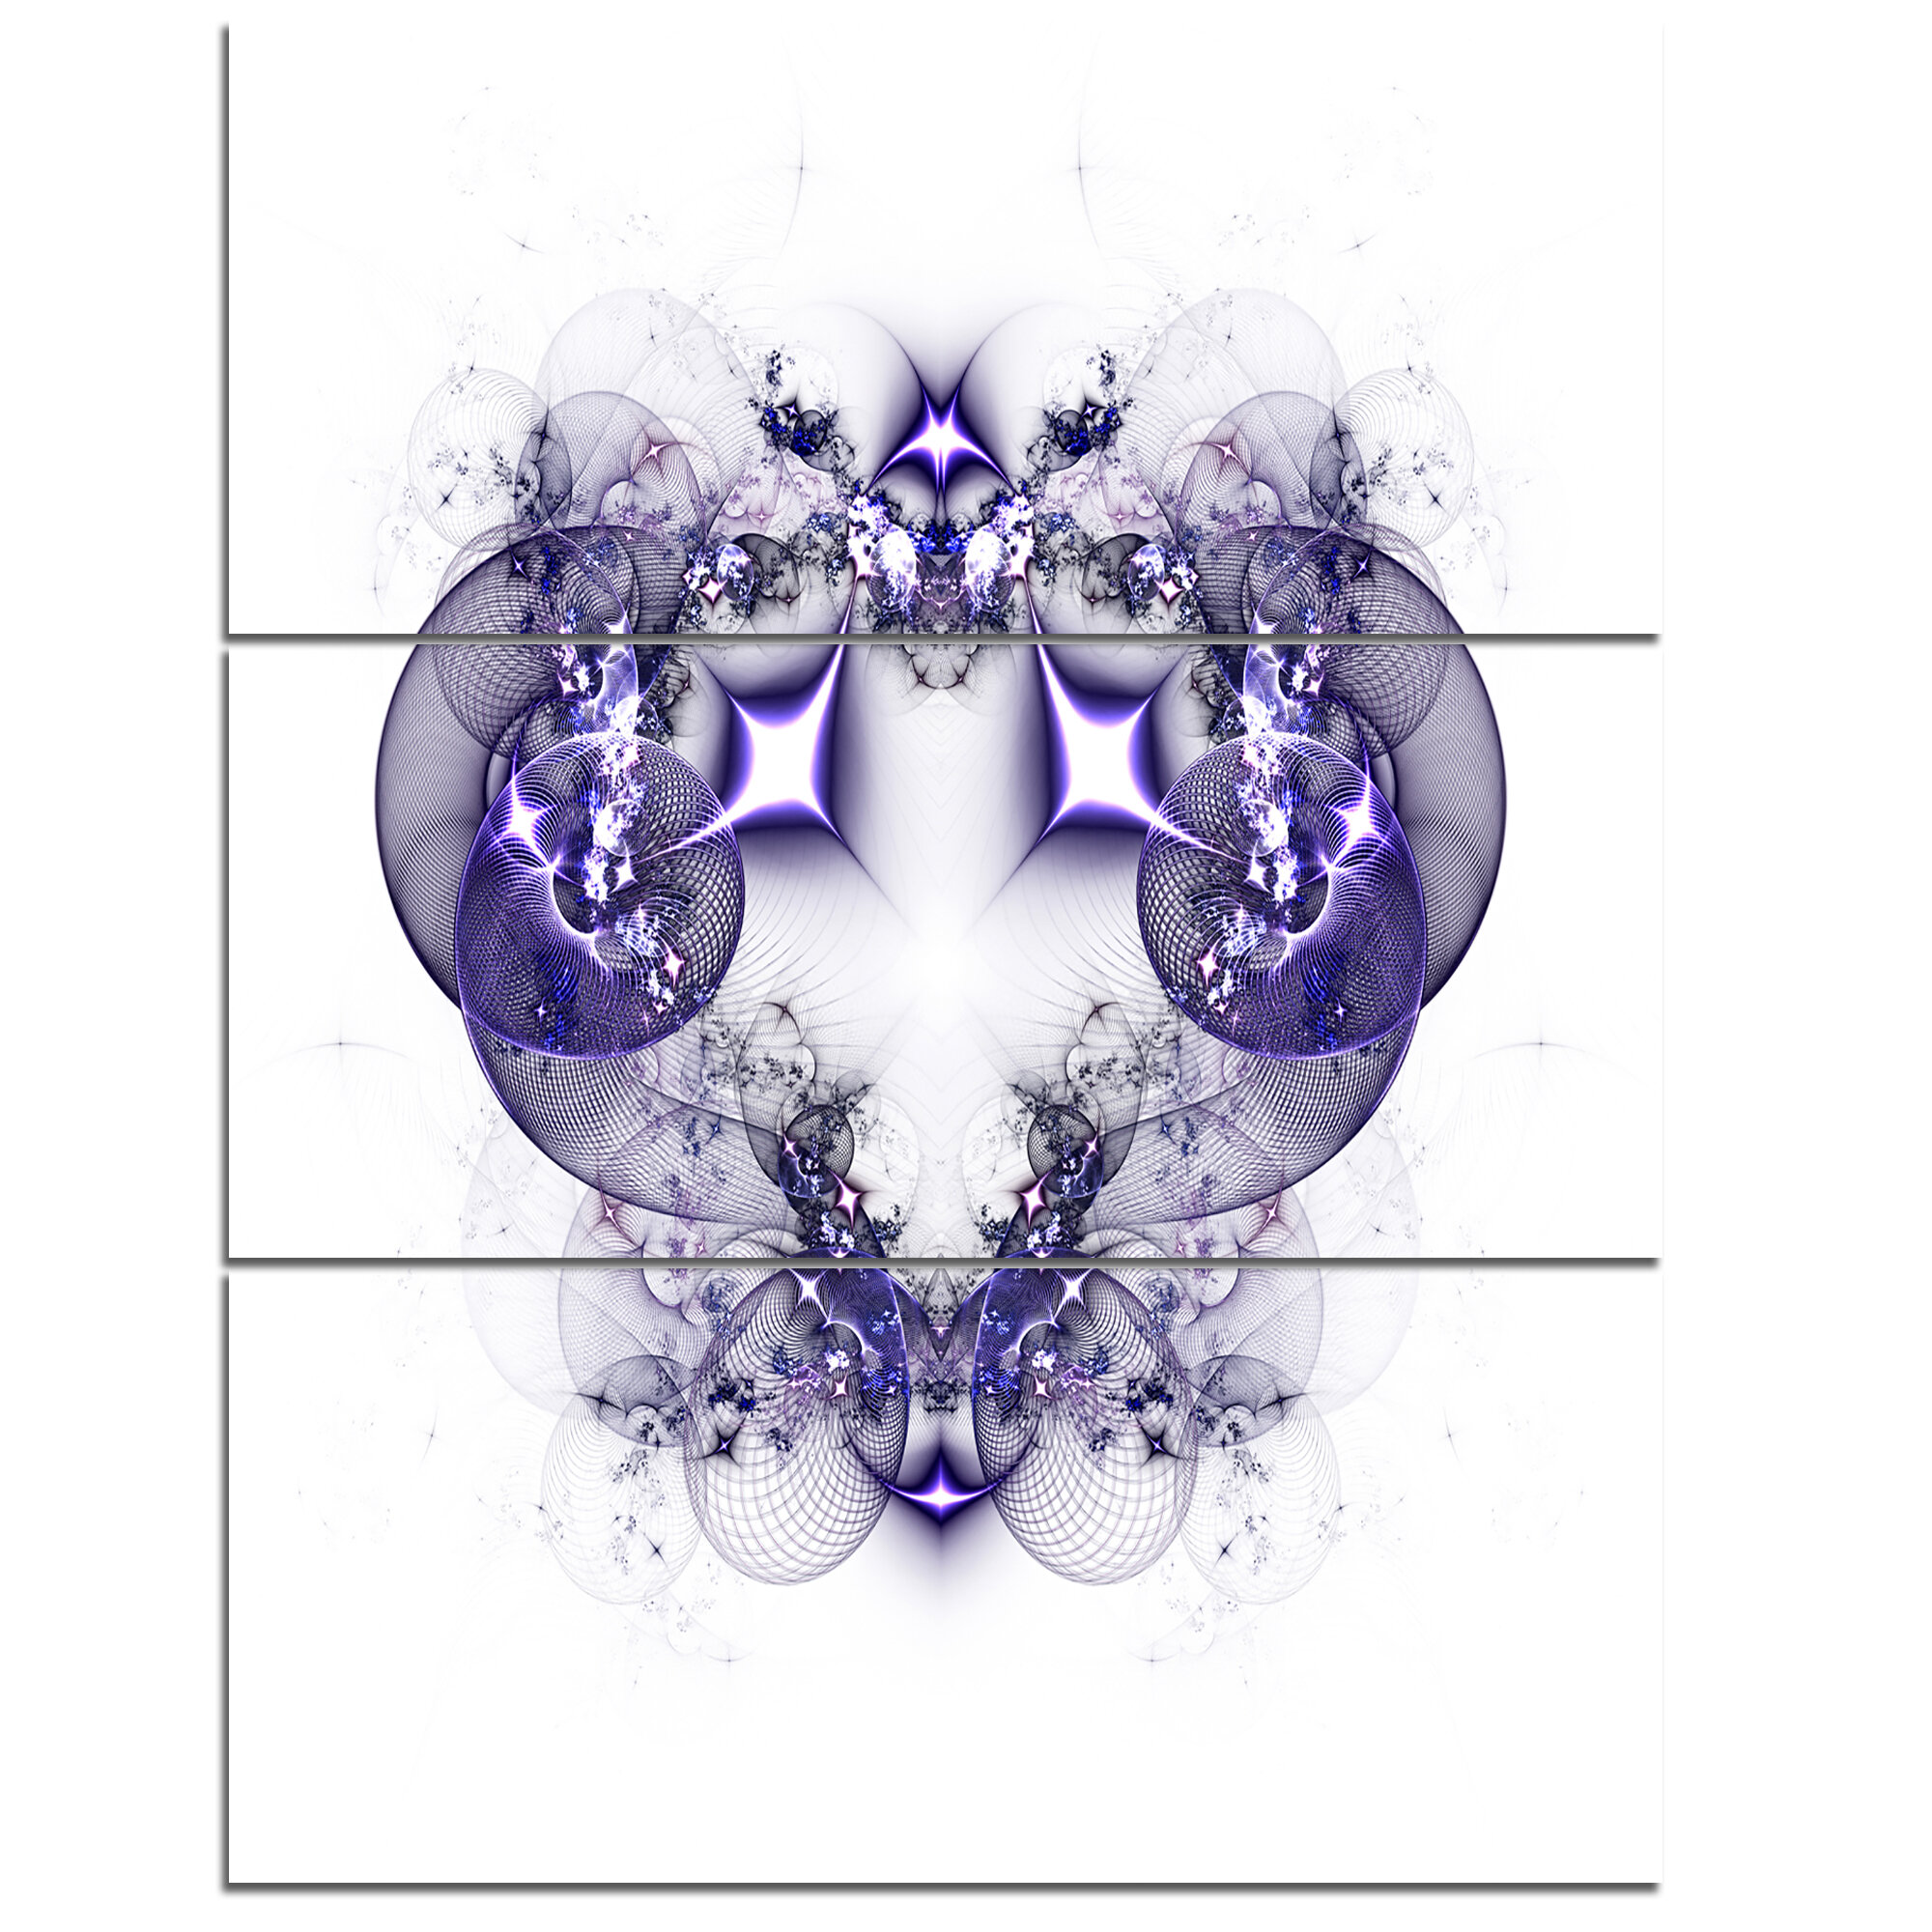 Designart Dark Purple Fractal Flower Design 3 Piece Graphic Art On Wrapped Canvas Set Wayfair